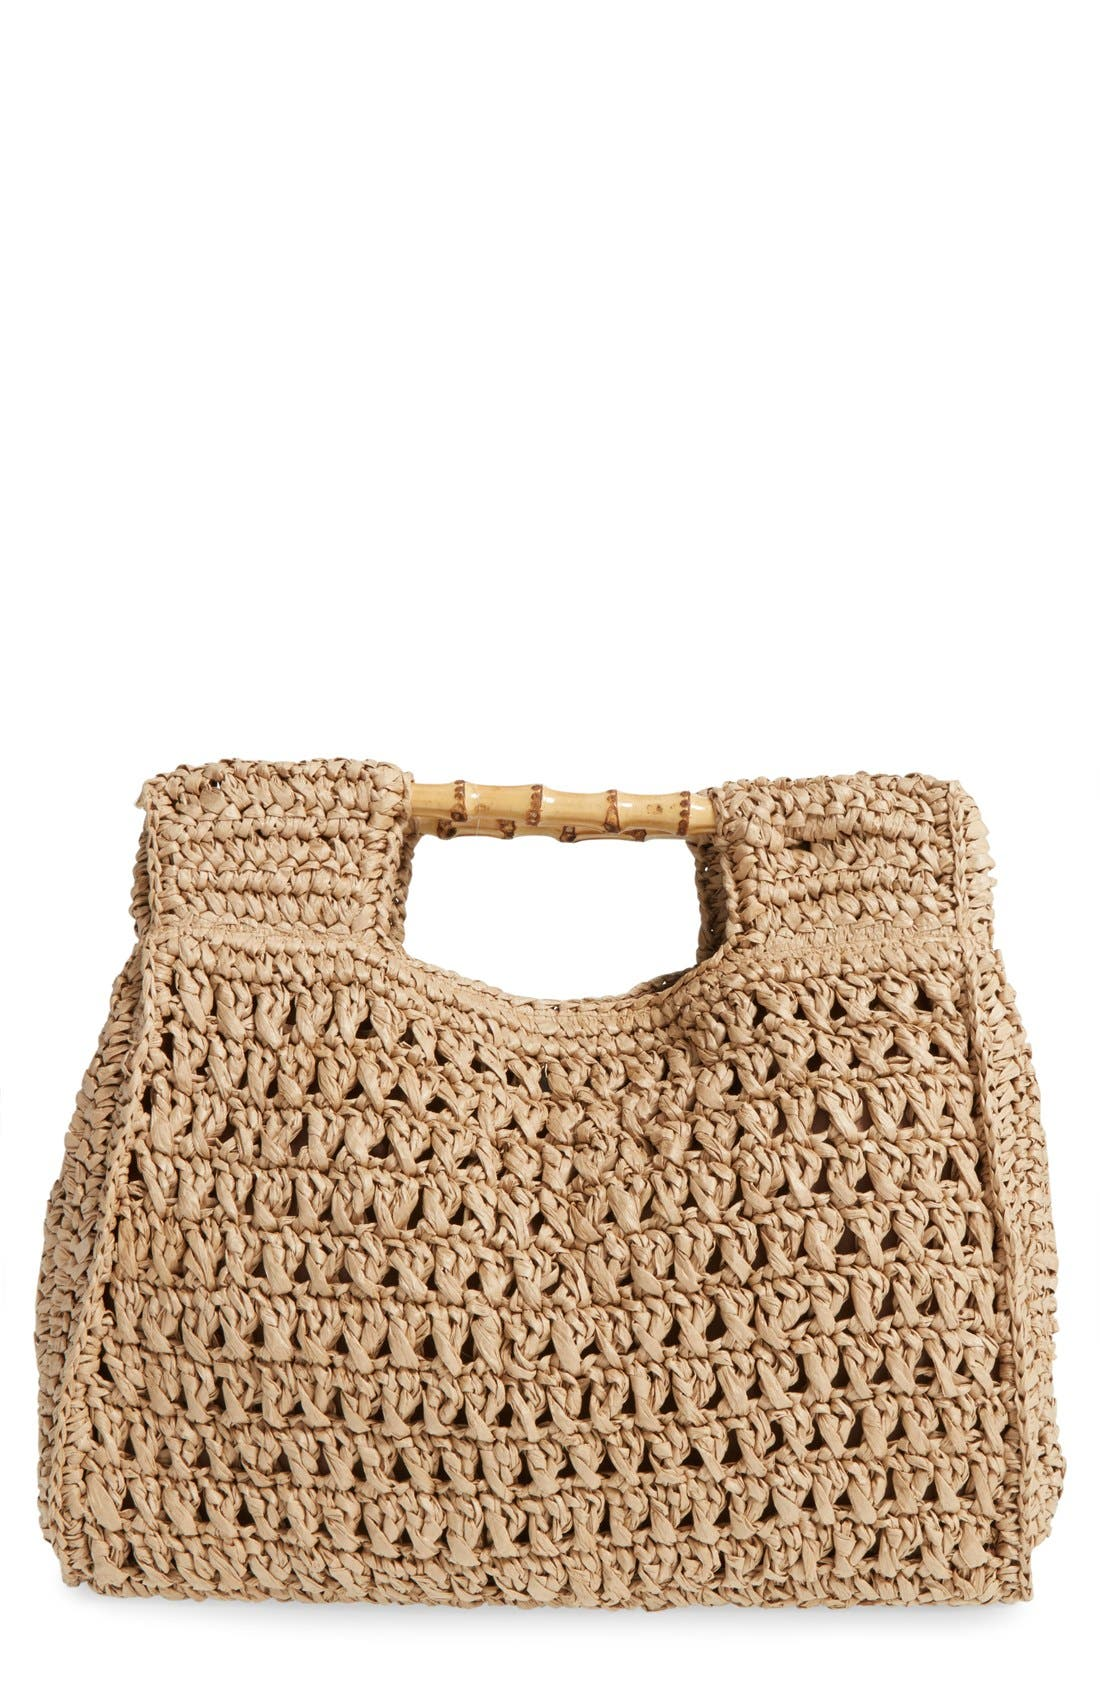 Woven Straw Tote,                             Main thumbnail 1, color,                             Natural